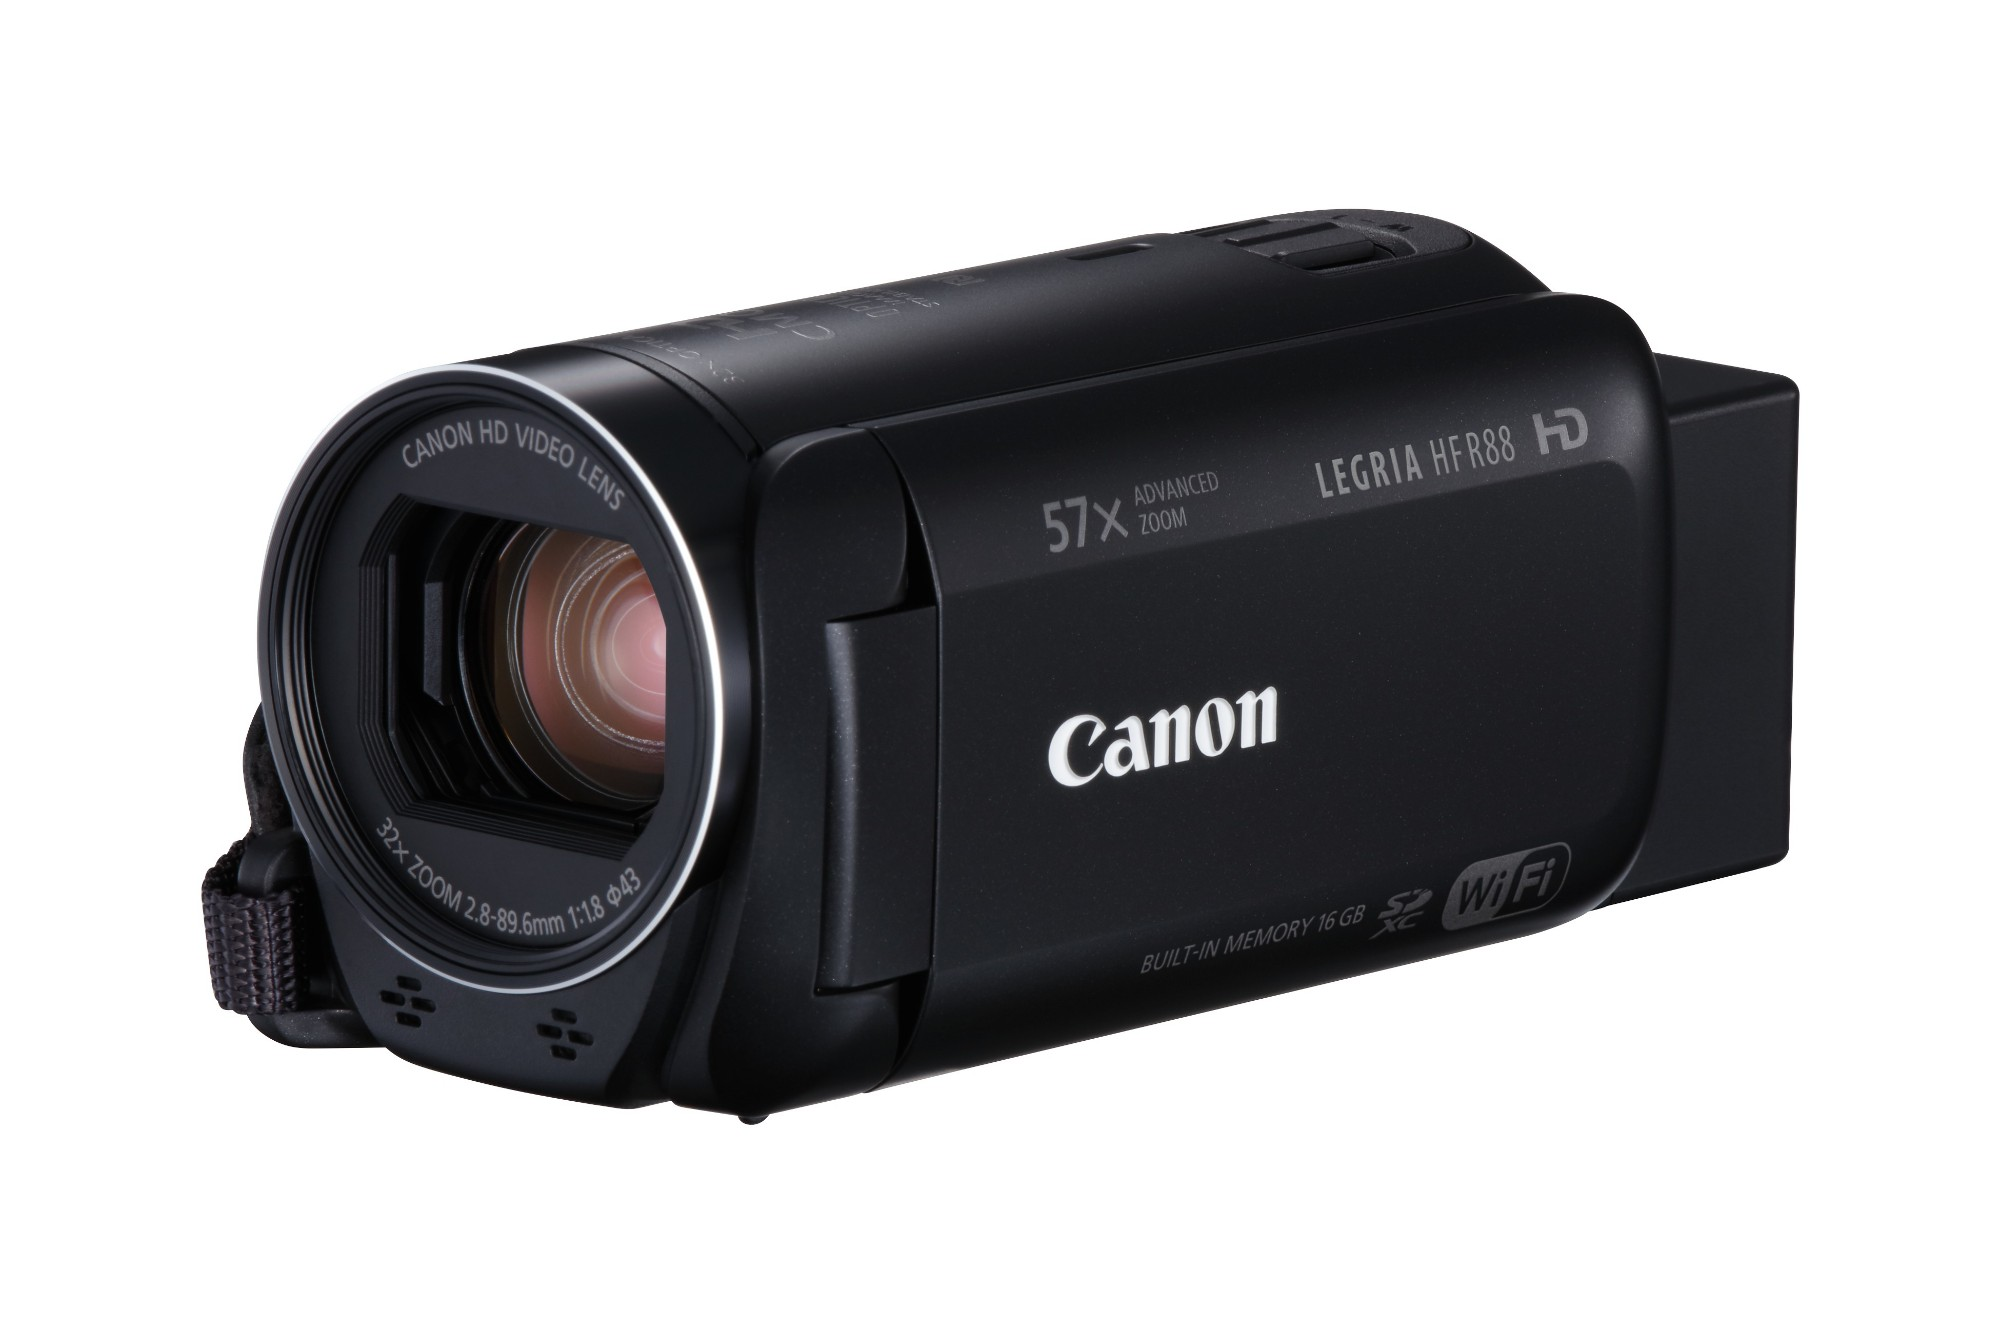 Canon LEGRIA HF R88 Handheld camcorder 3.28MP CMOS Full HD Black